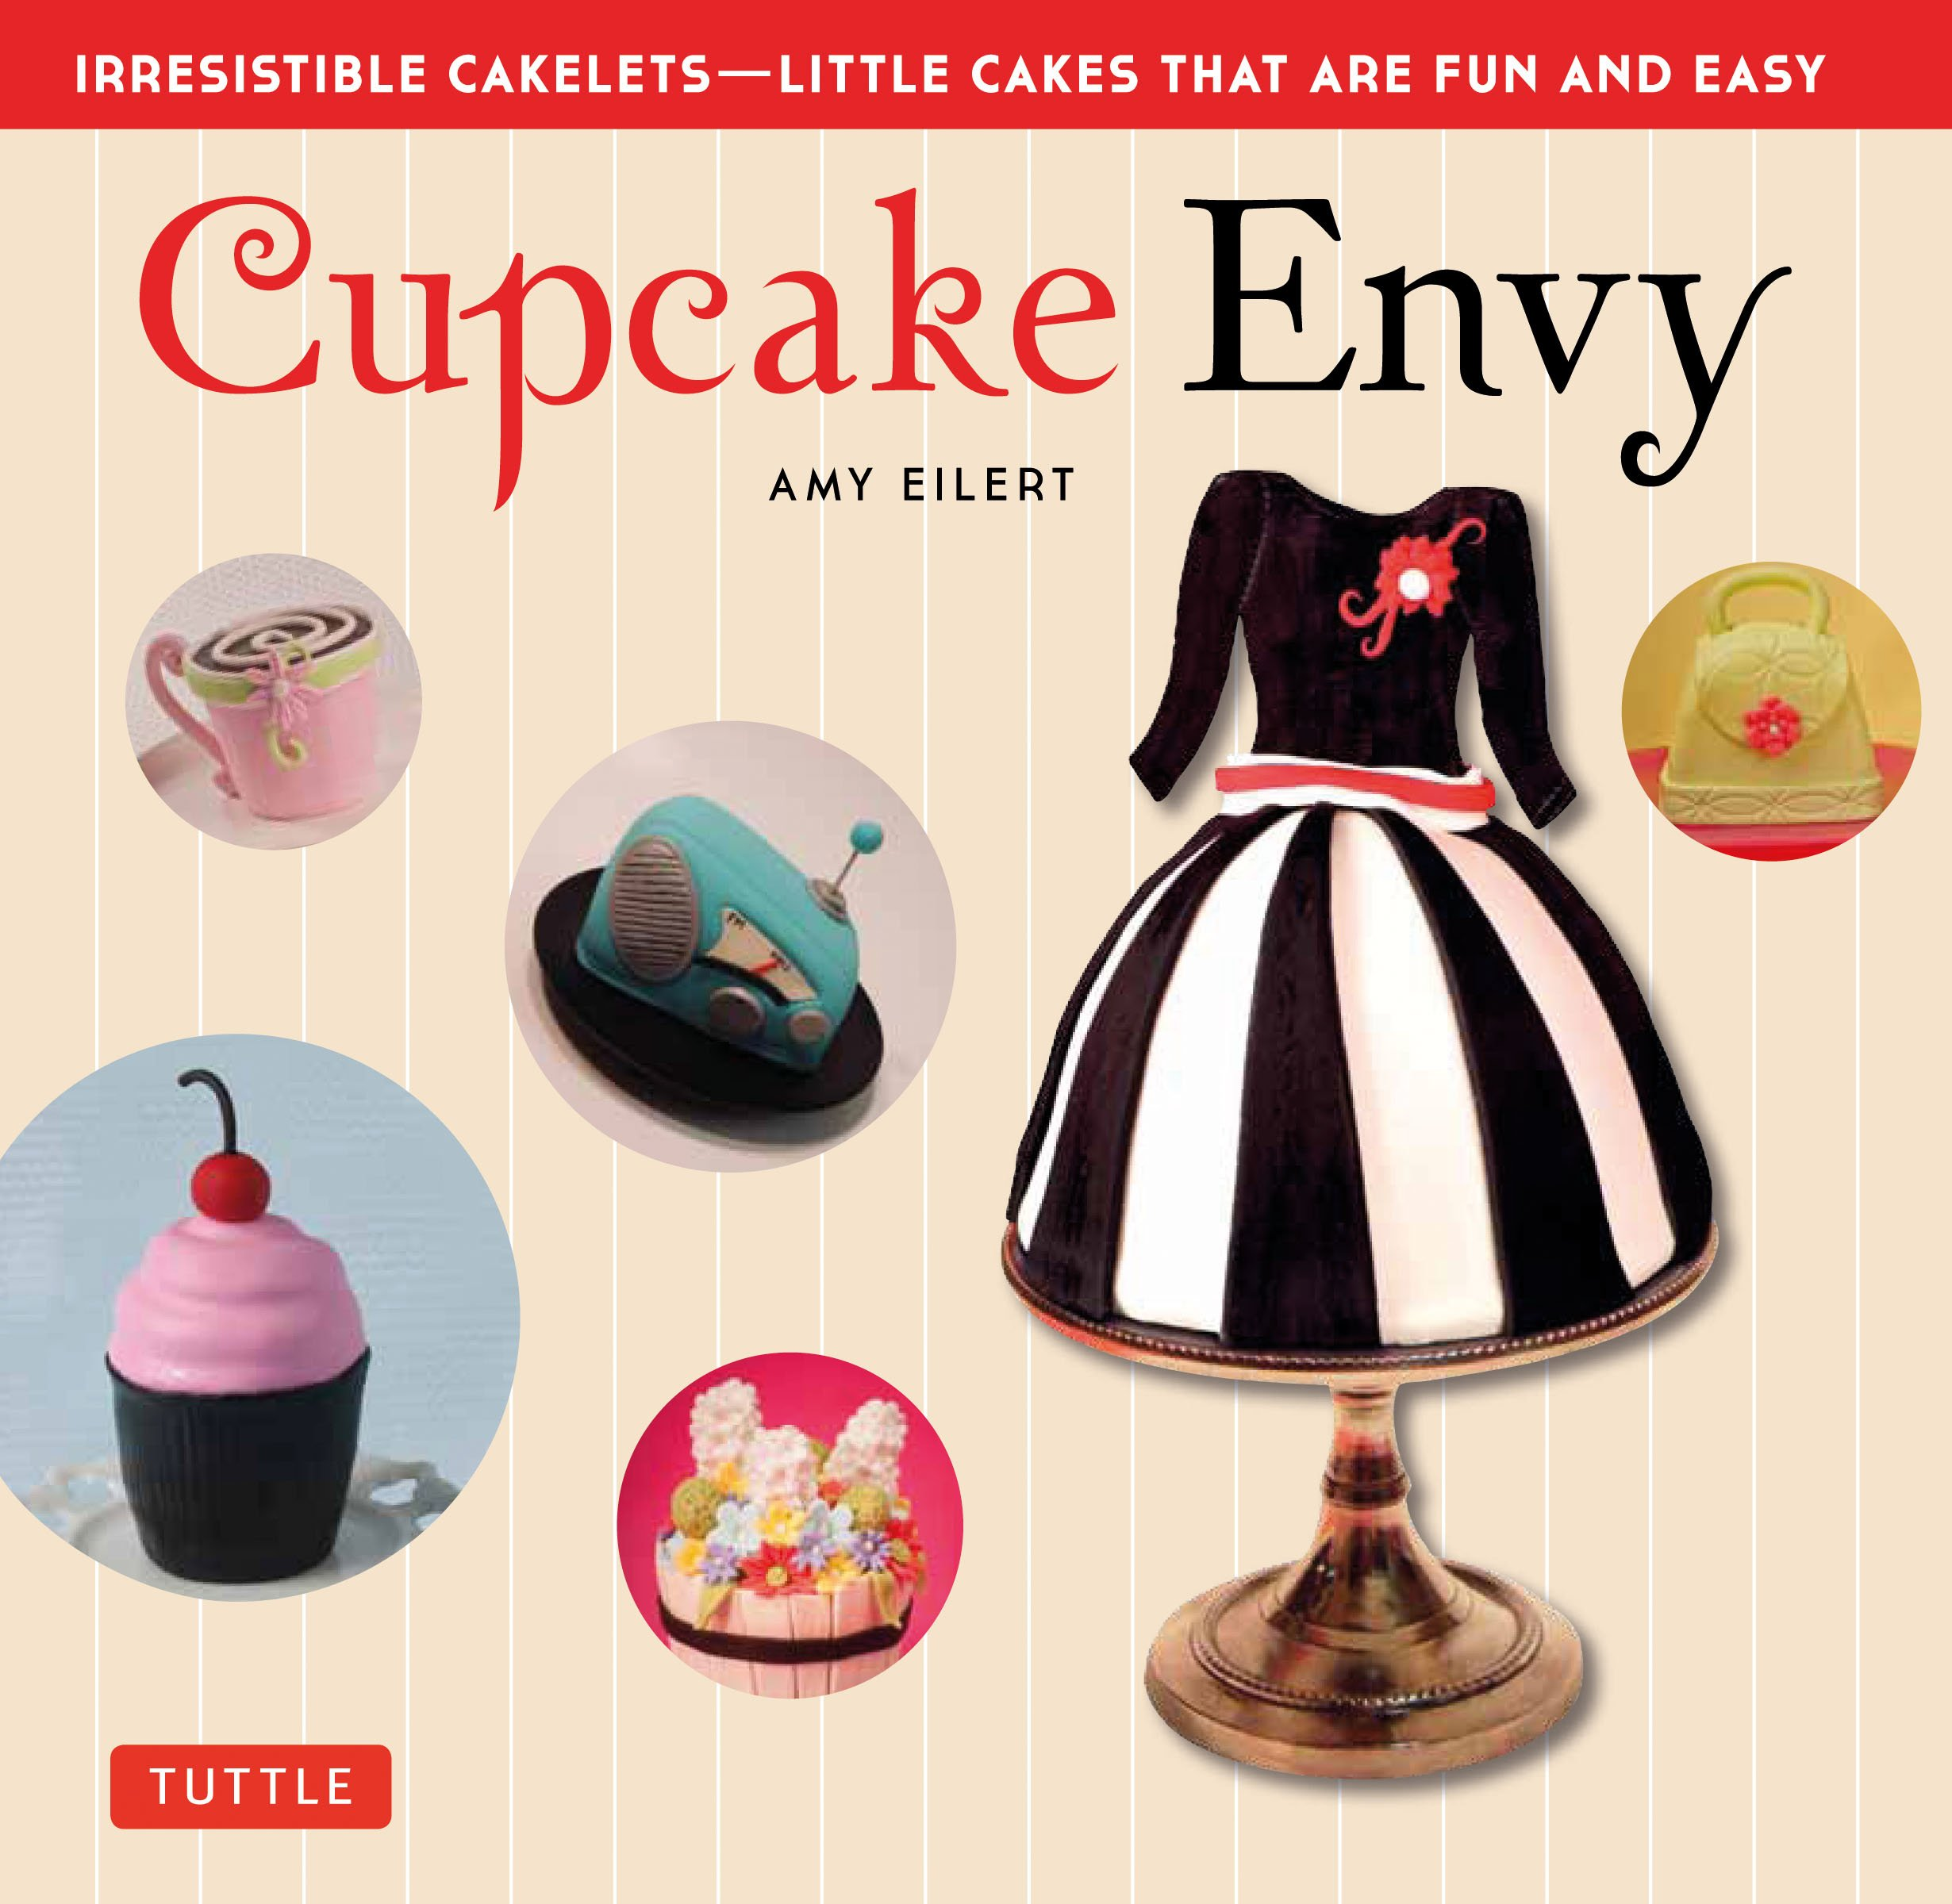 Cupcake Envy Irresistible Cakelets Little